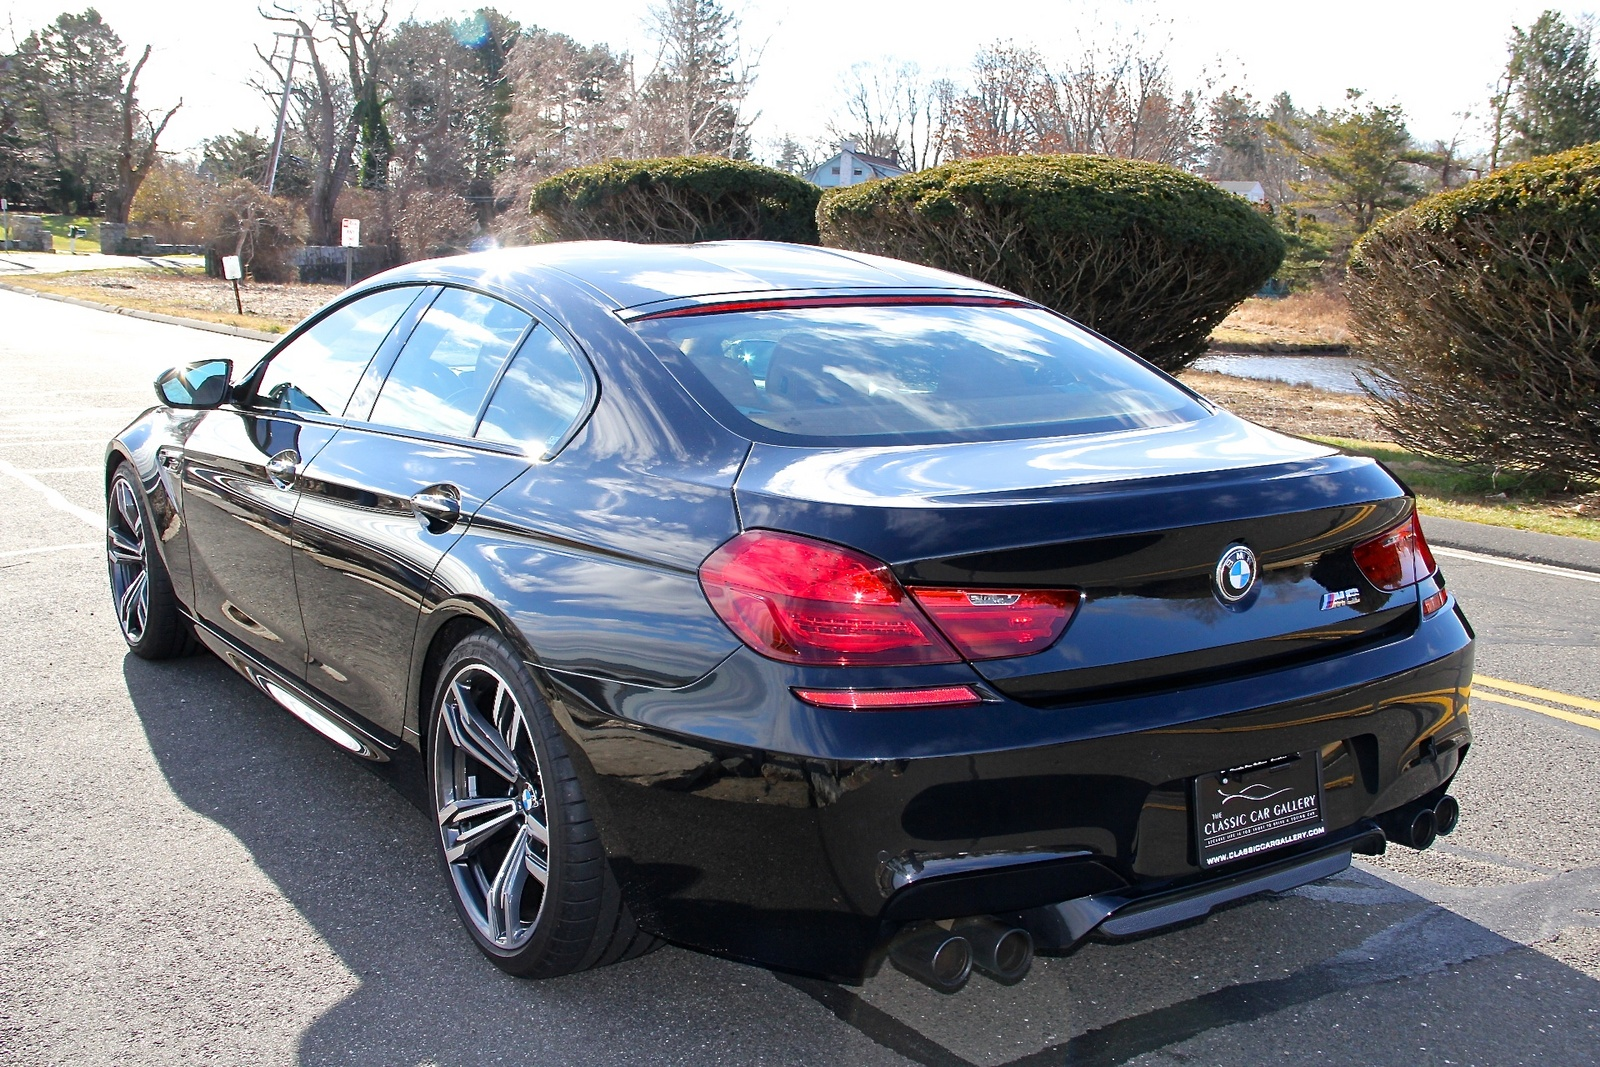 2014 Bmw M6 Rebuilt Salvage For Sale: Search Results Buy Used Bmw M6 Cheap Pre Owned Bmw M6 Cars